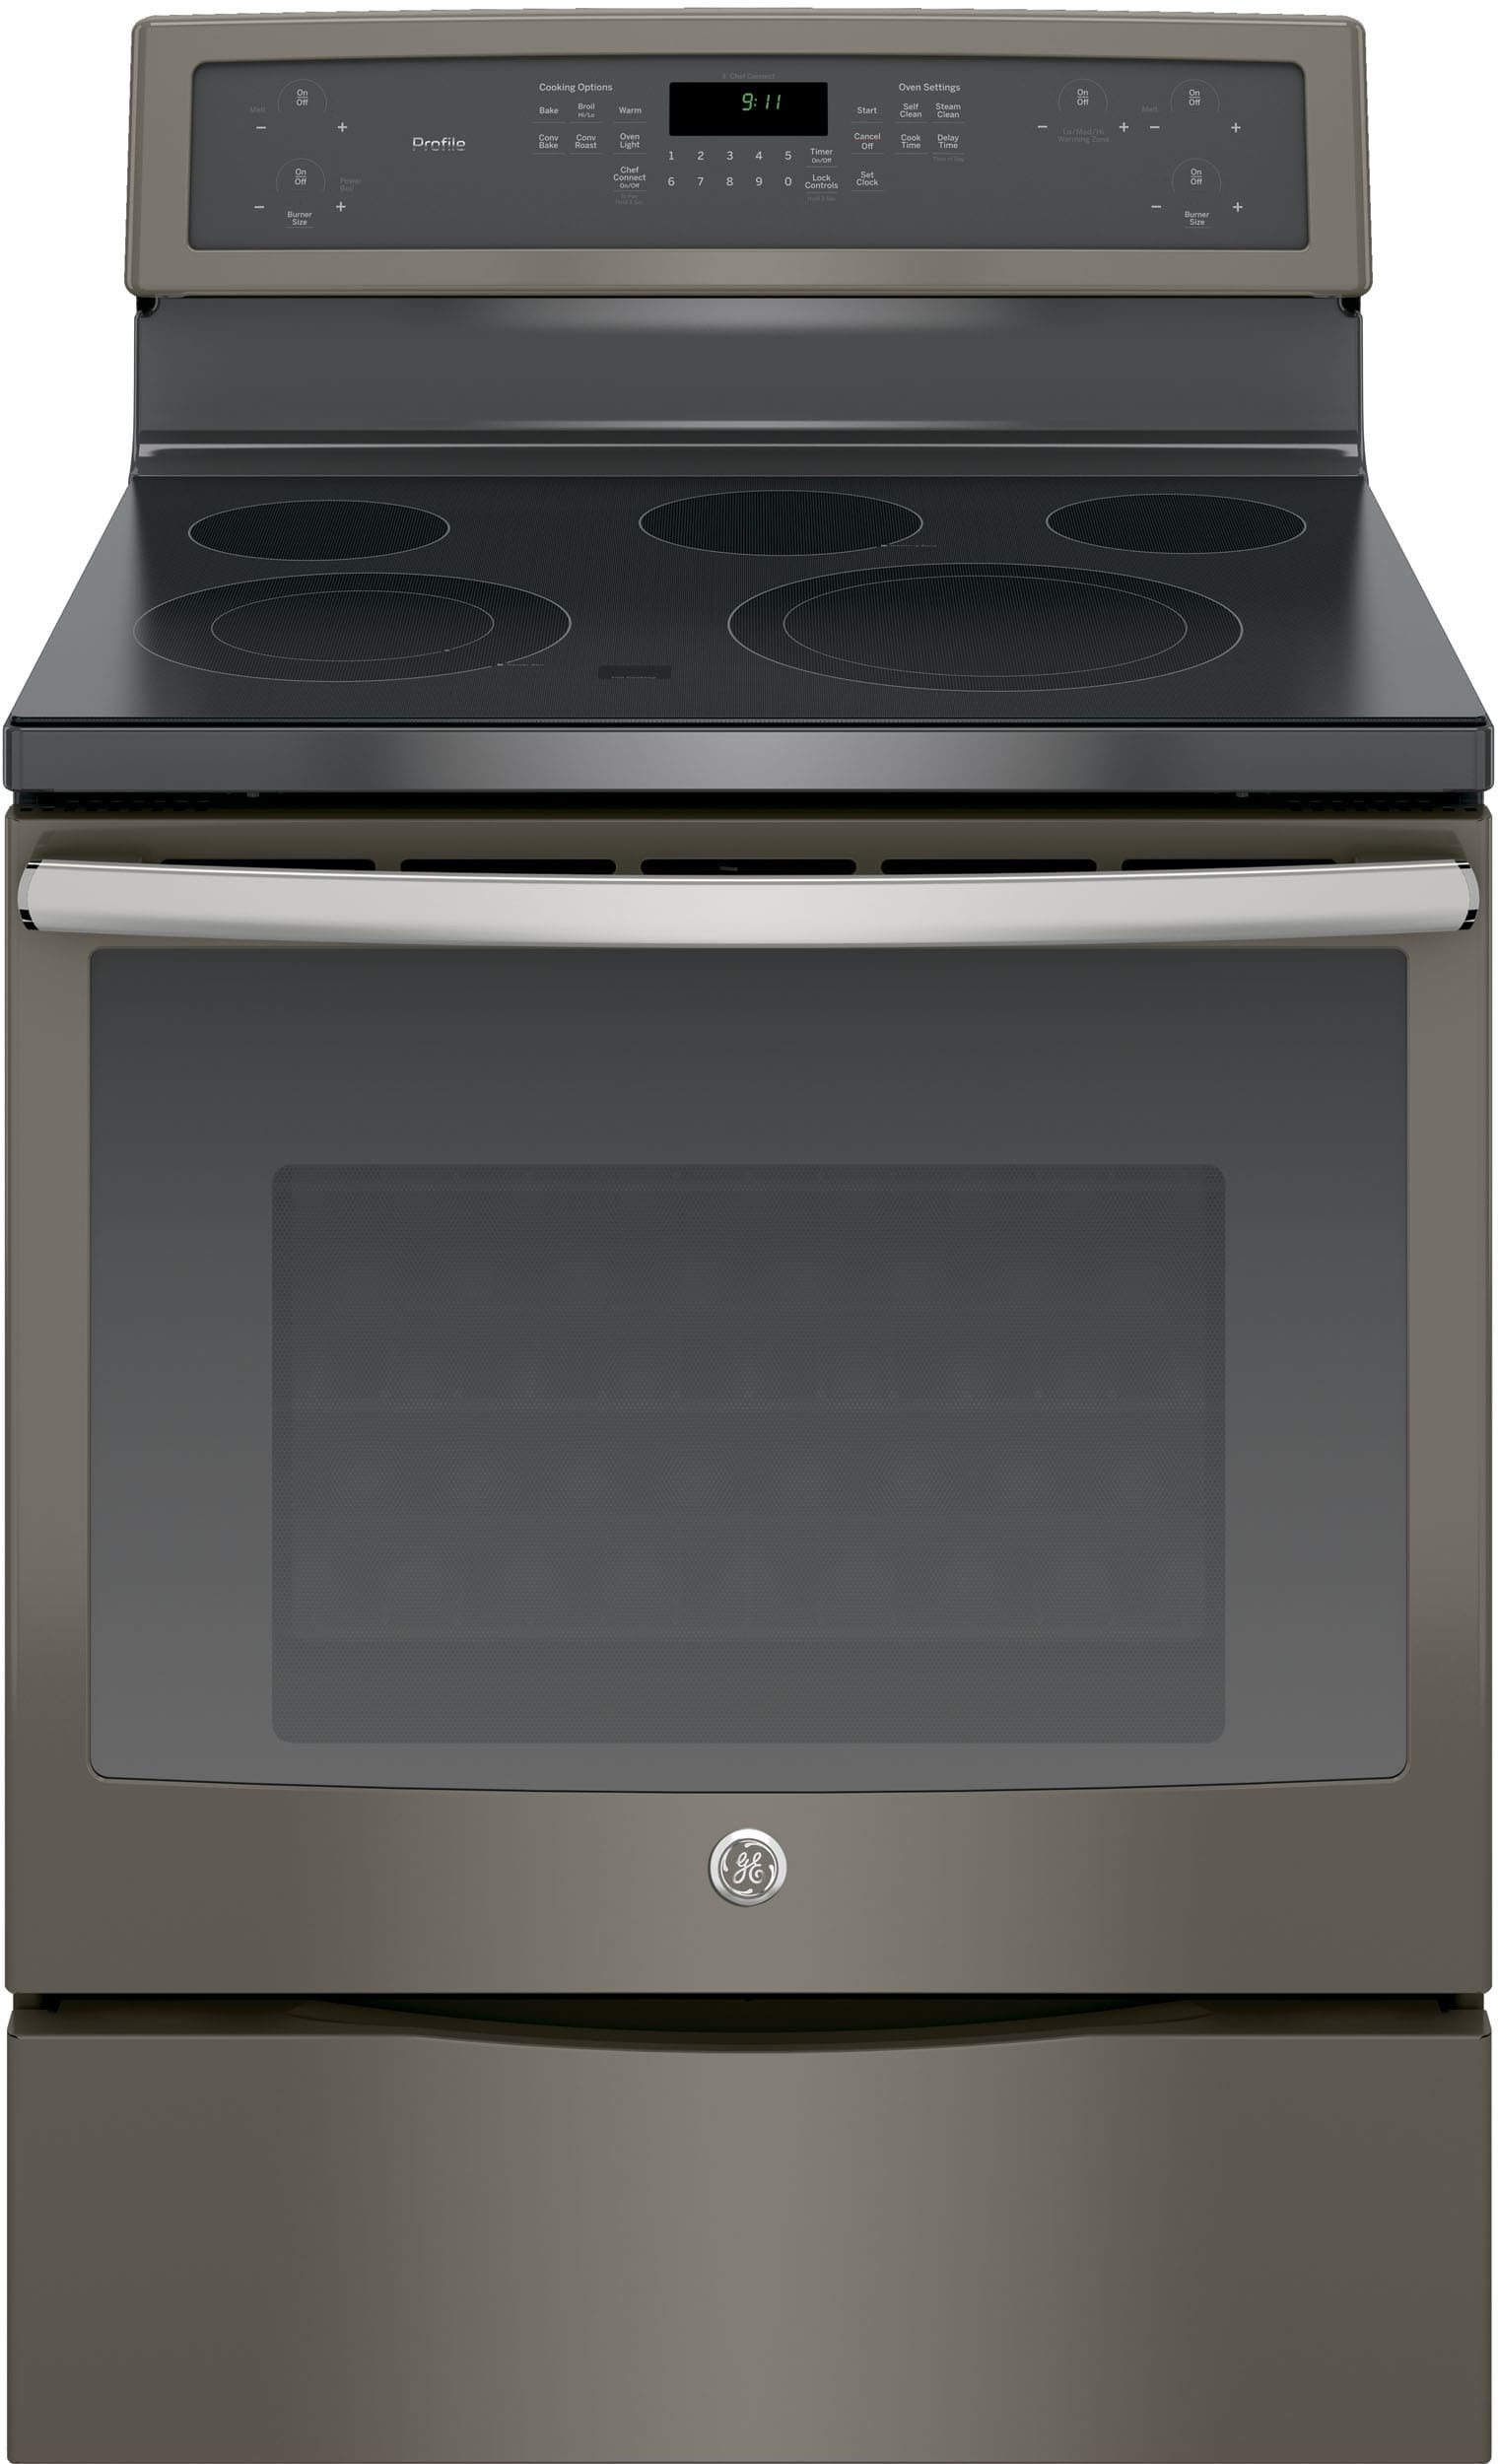 GE PB911EJES 30 Inch Freestanding Electric Range with True Convection, Chef  Connect, Fast Preheat, Power Boil Element, Variable Element, Warming Zone,  ...